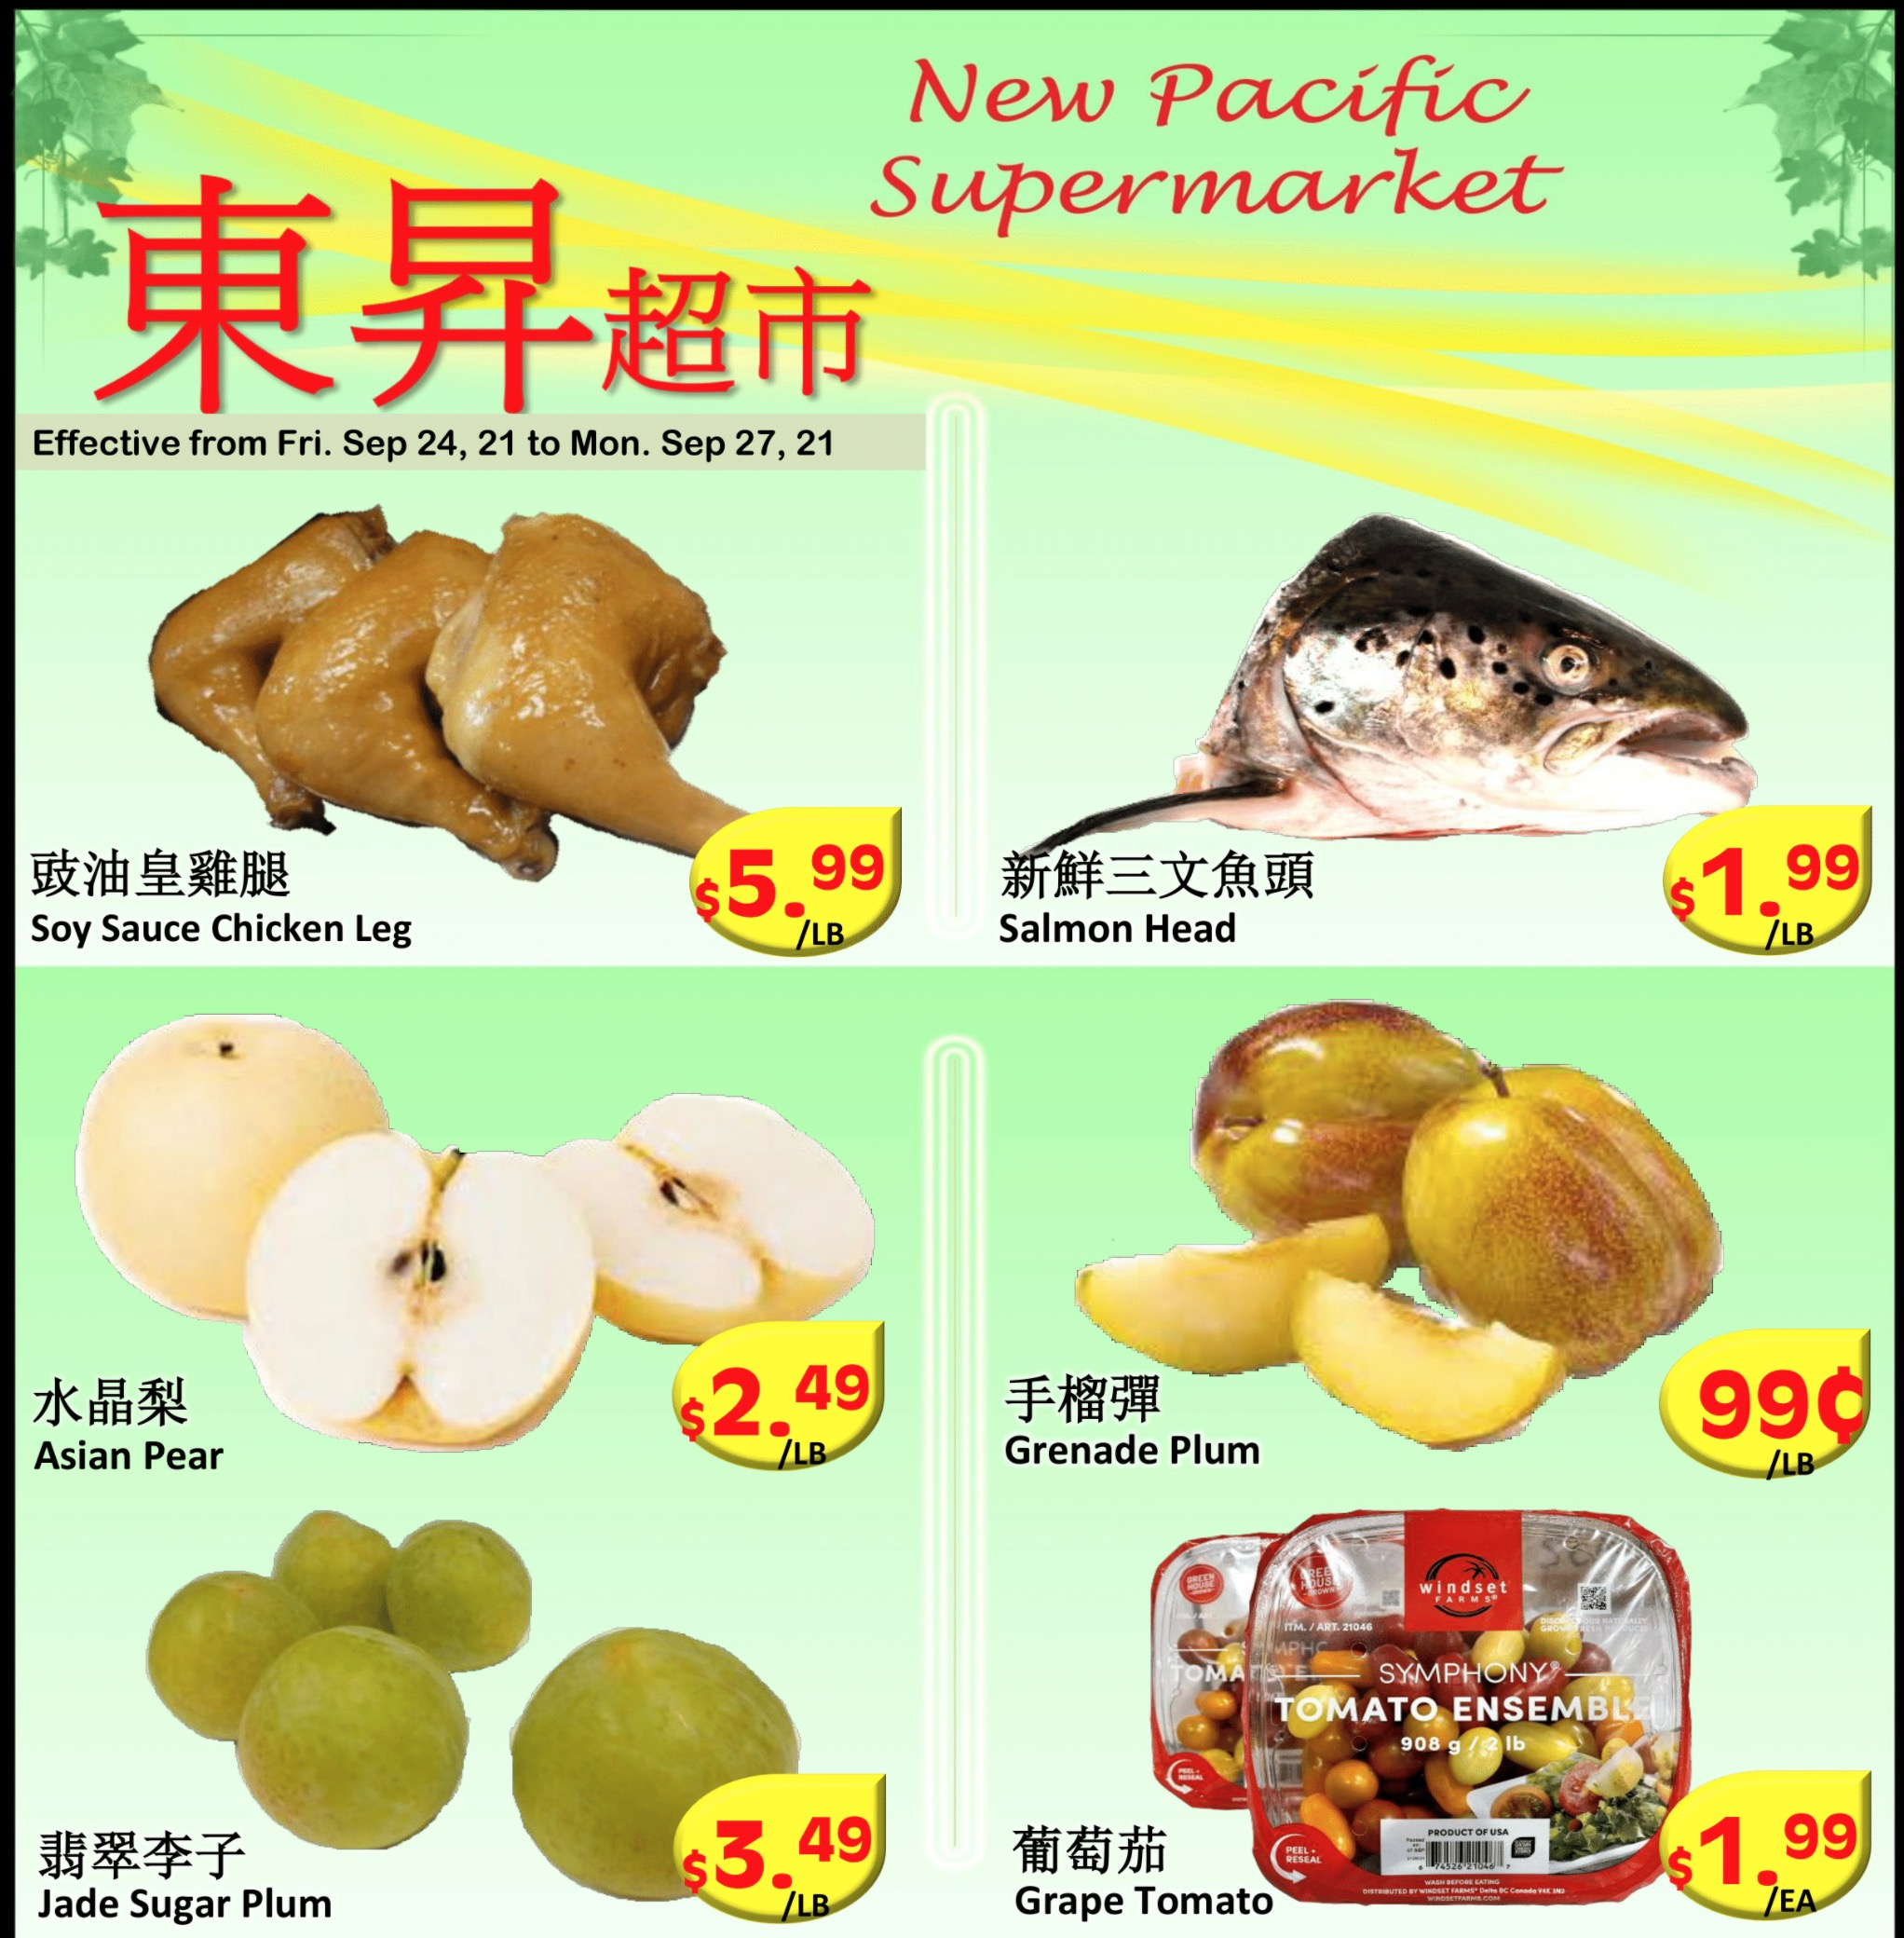 New Pacific Supermarket Flyer   Sep 24